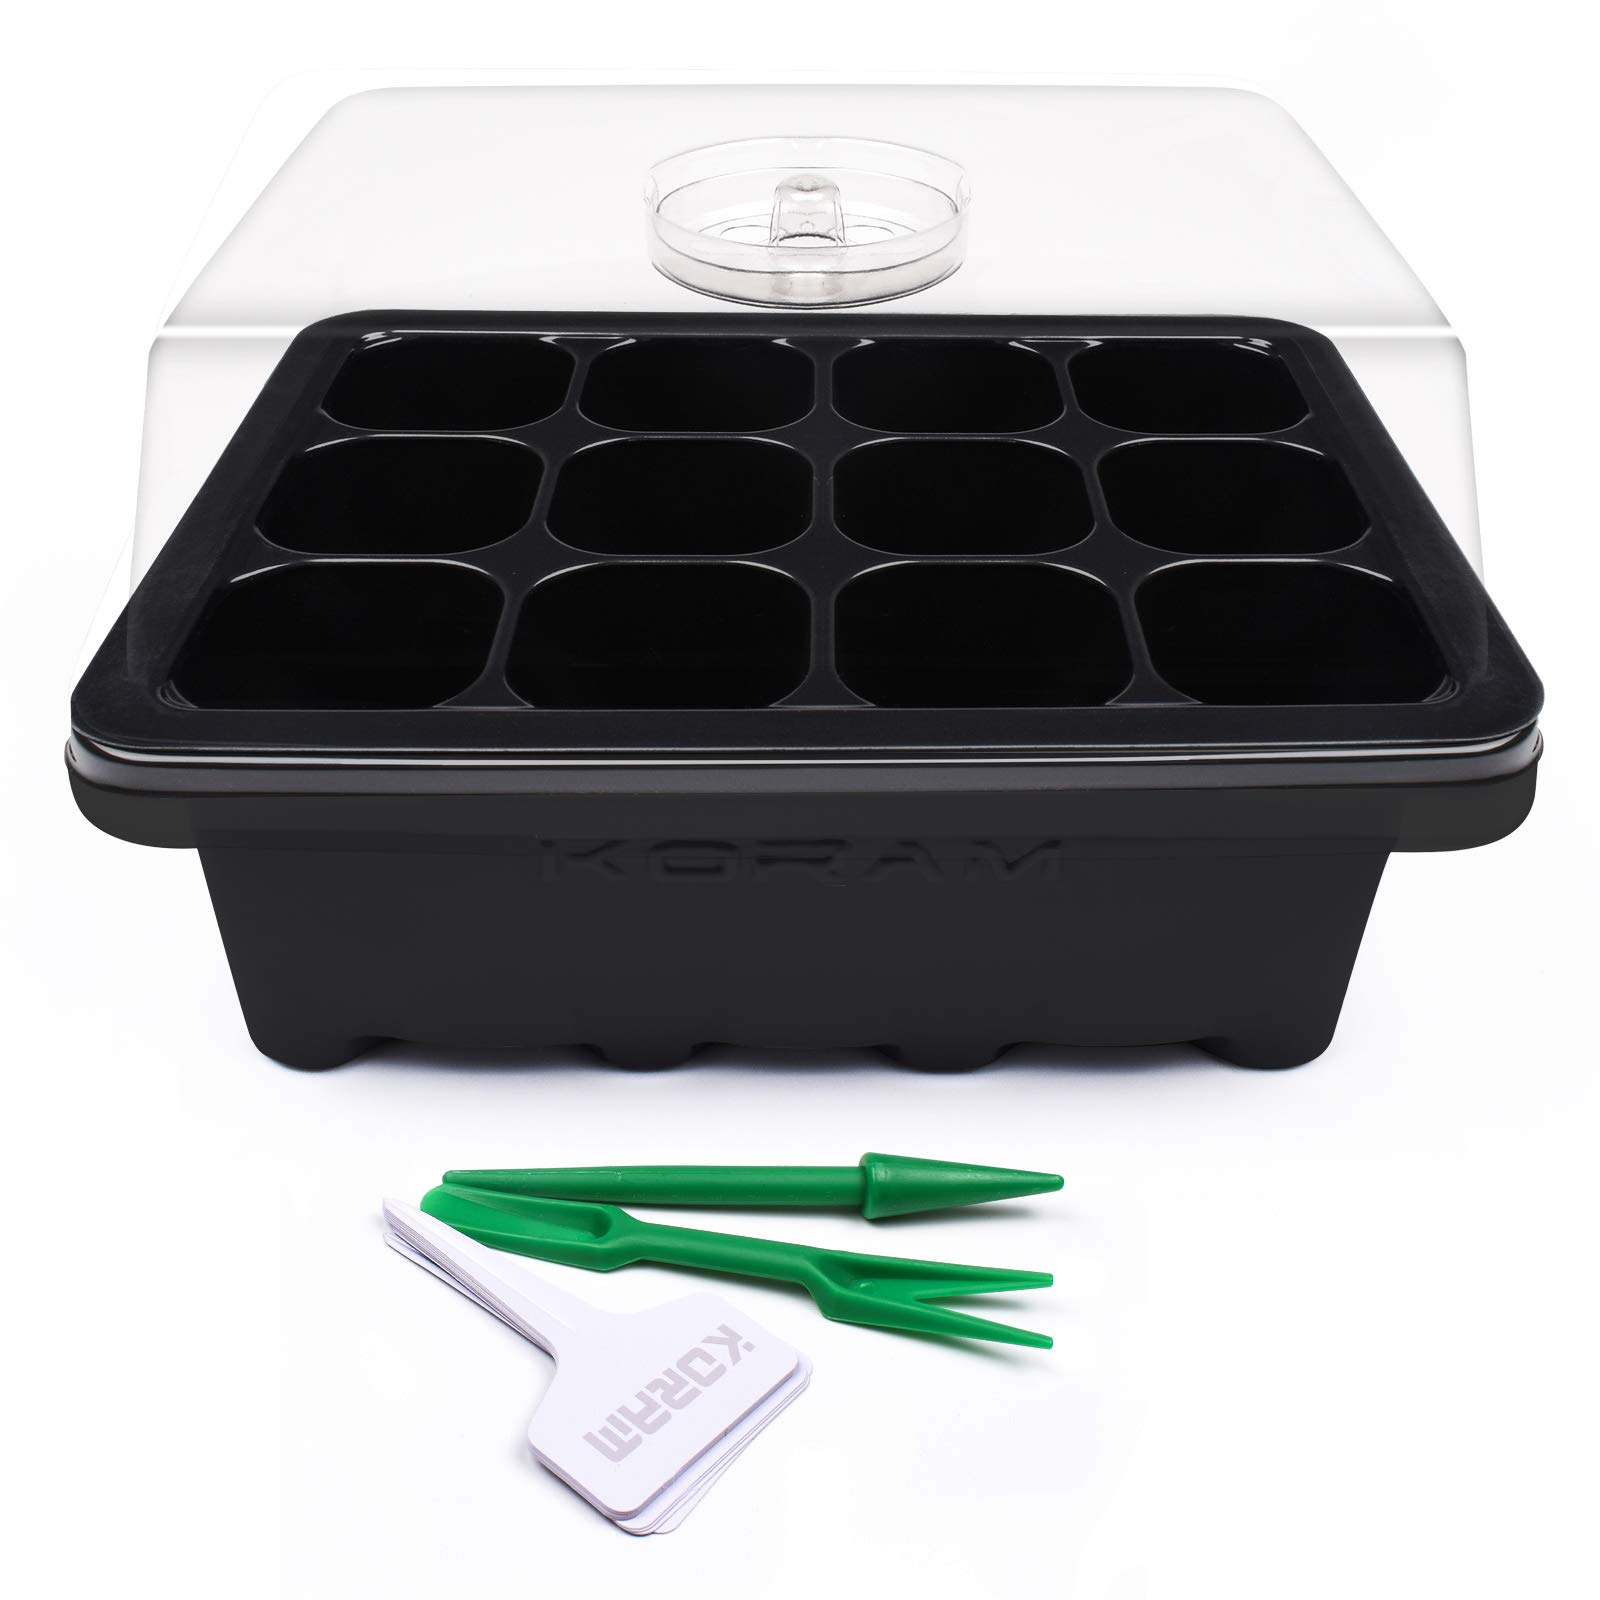 KORAM 10 Sets Seed Starter Tray 120 Cells Seed Tray Plant Germination Kit Garden Seed Starting Tray with Dome and Base Plus Plant Tags Hand Tool Kit, Black - Garden Gift by KORAM